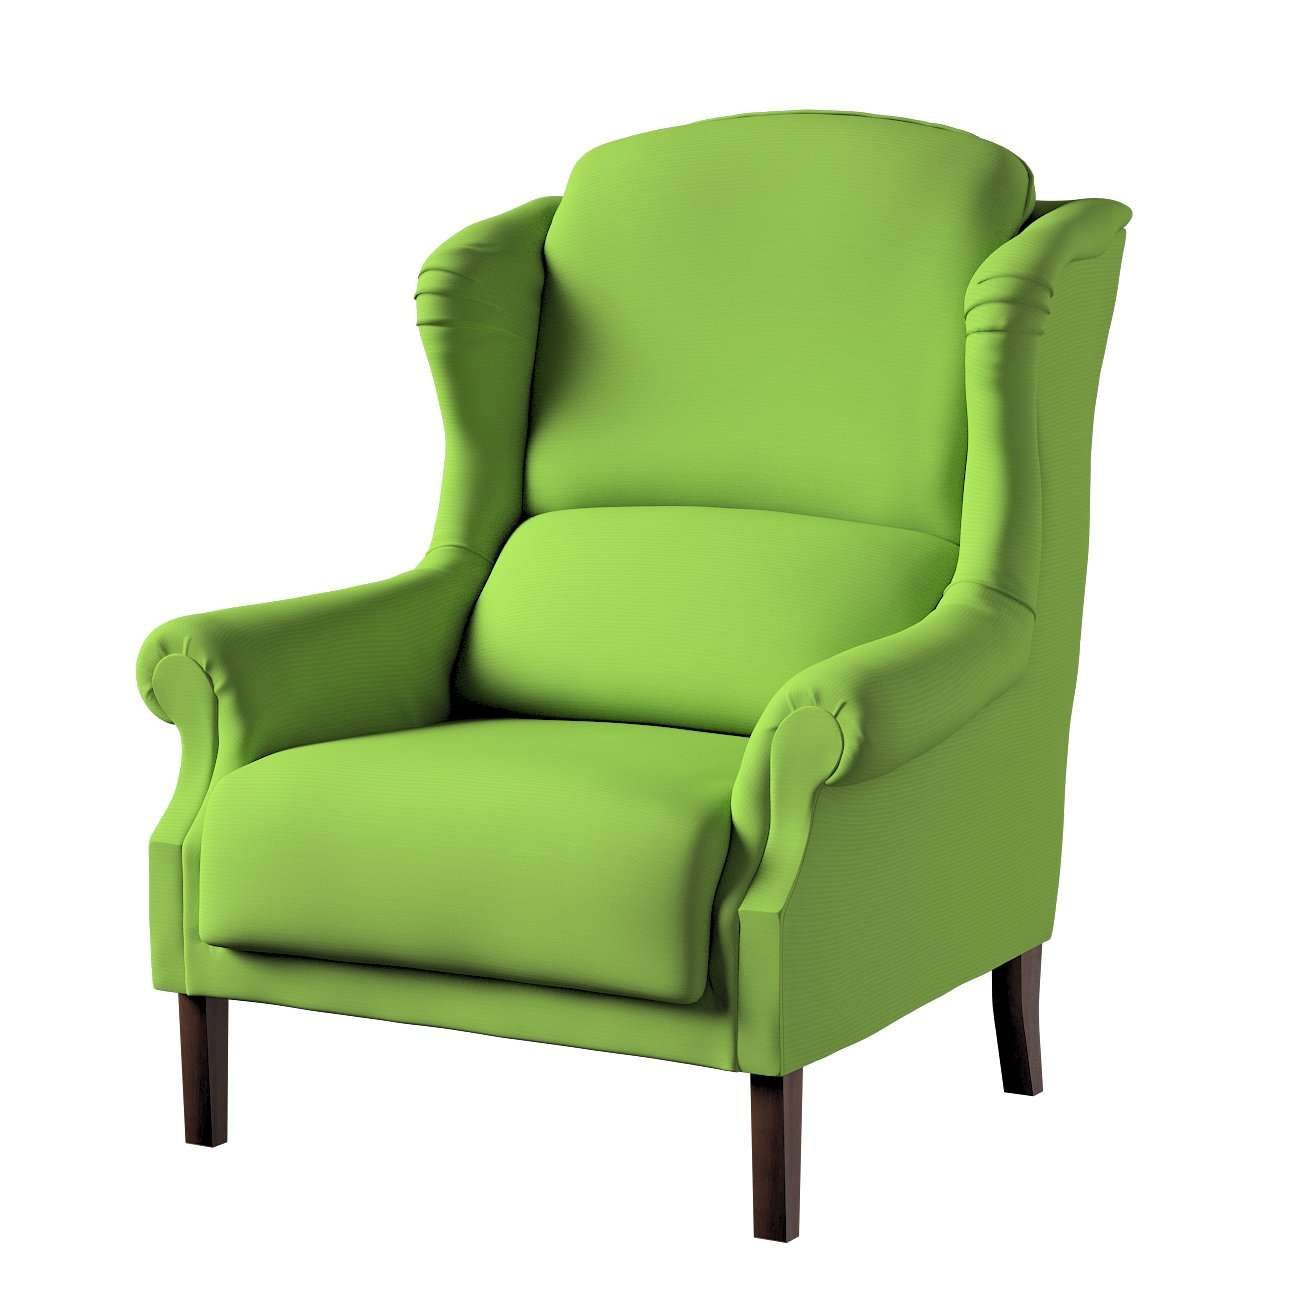 Nursing Armchair Willy in collection Cotton Story, fabric: 702-27